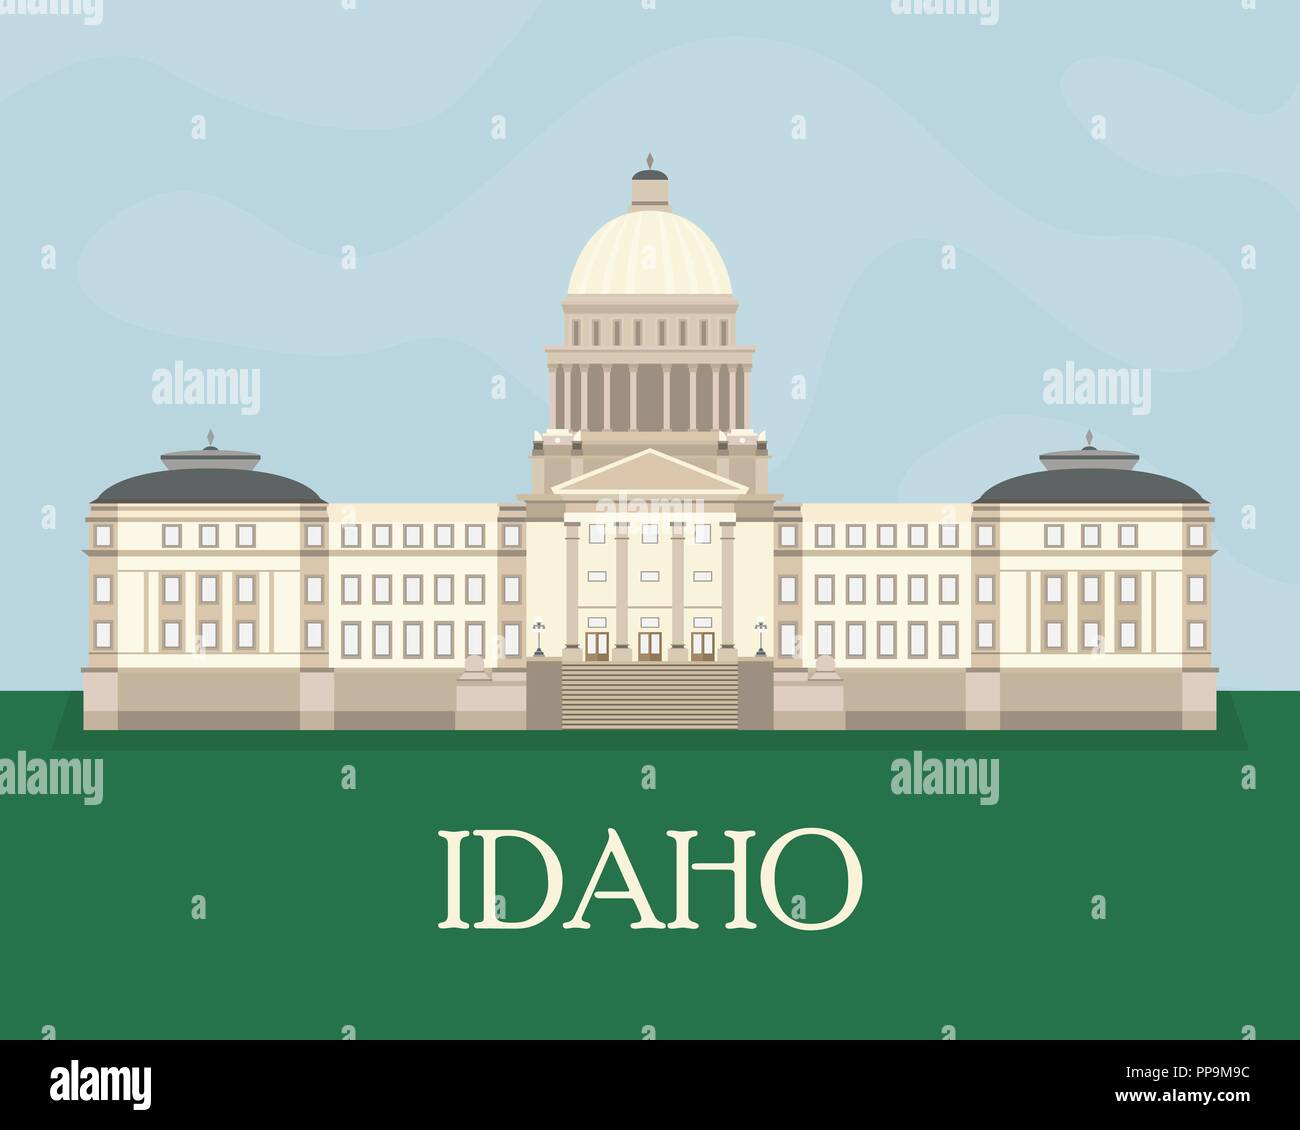 Flat color illustration of the Idaho State Capitol. Flat style vector. - Stock Vector